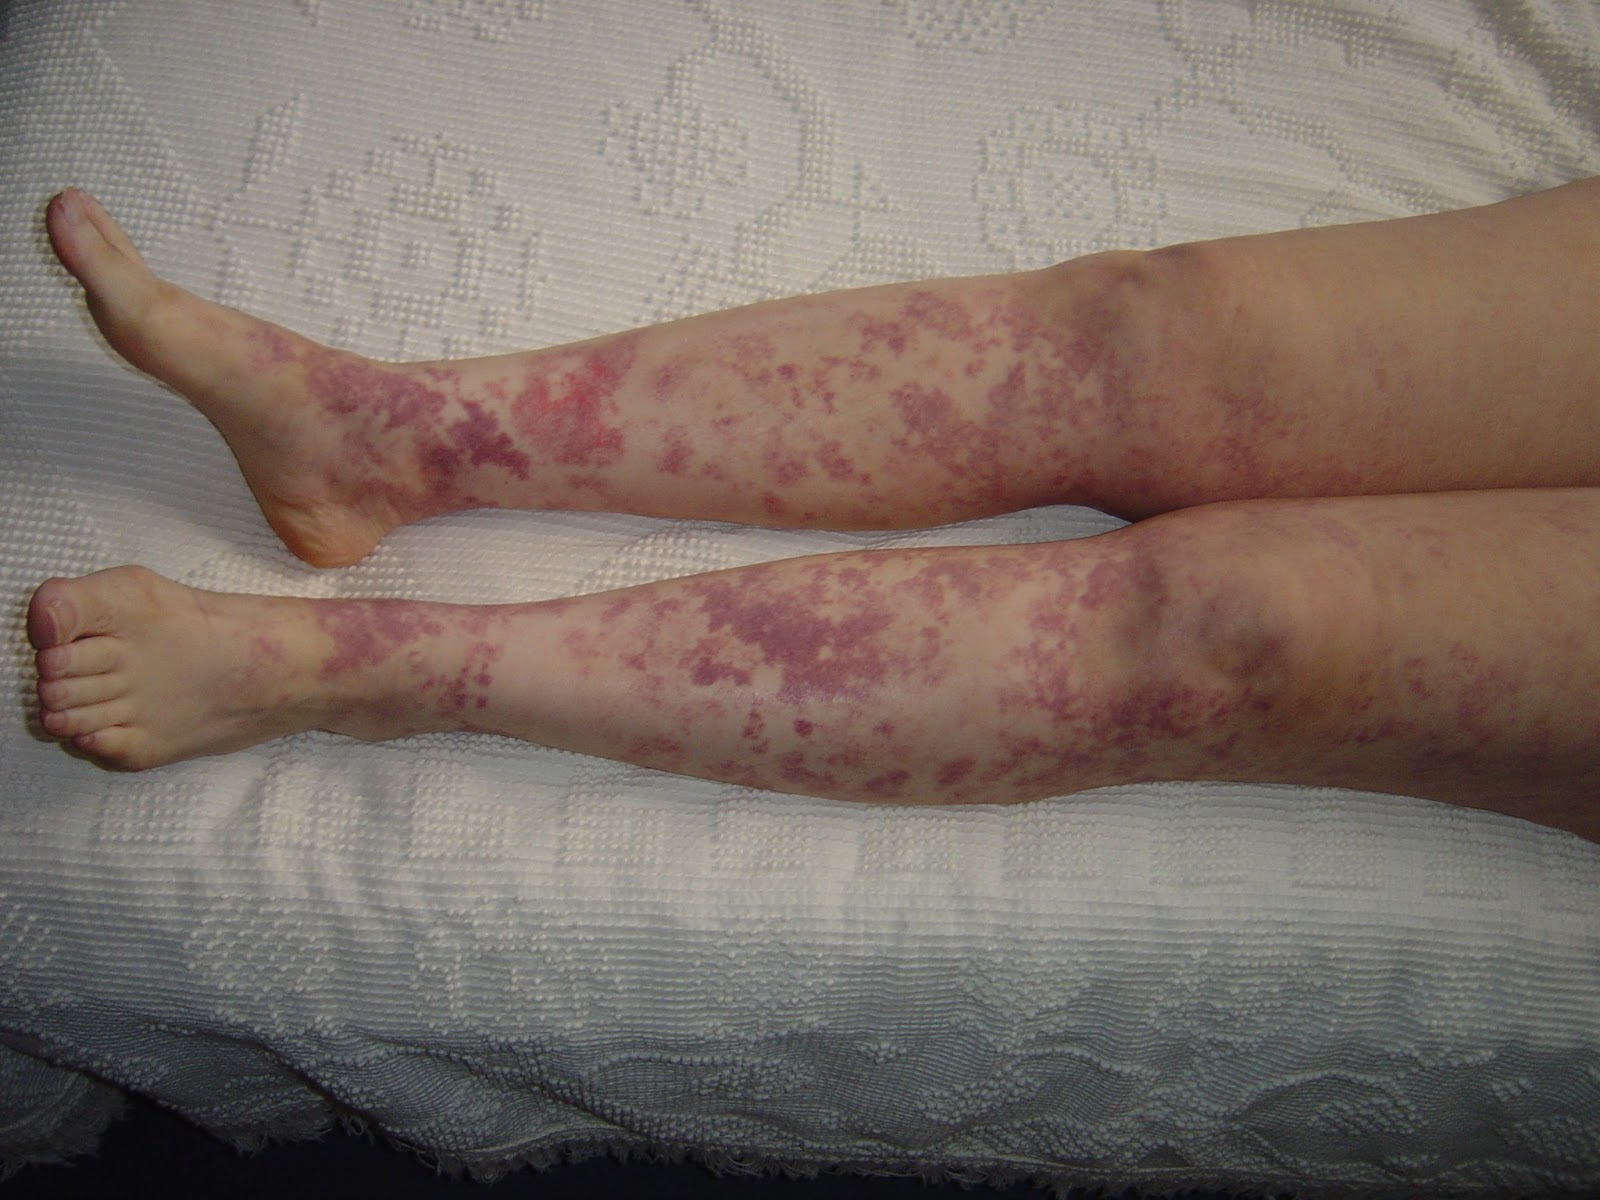 My Legs with rash from vitamins